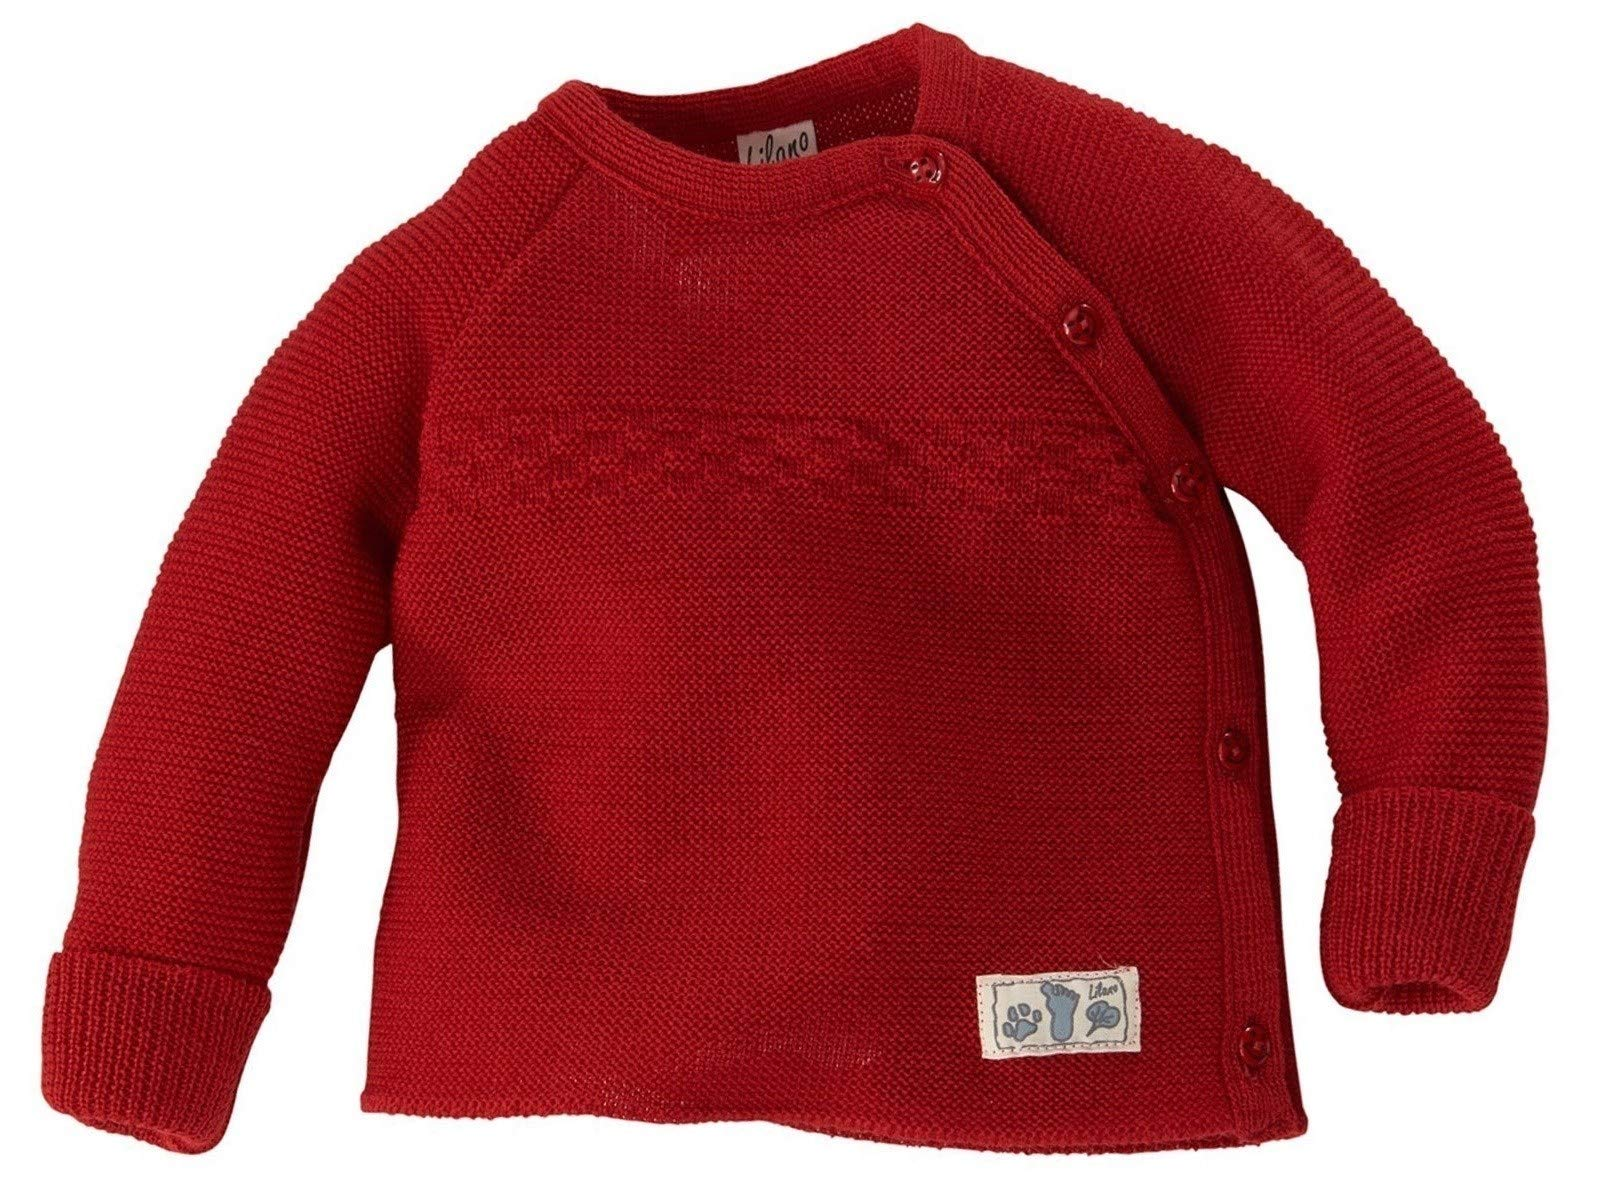 Lilano 100% Organic Merino Wool Baby Knitted Sweater [776216]. Made in Germany. (50/56 (0-3 Months), Red) by Lilano